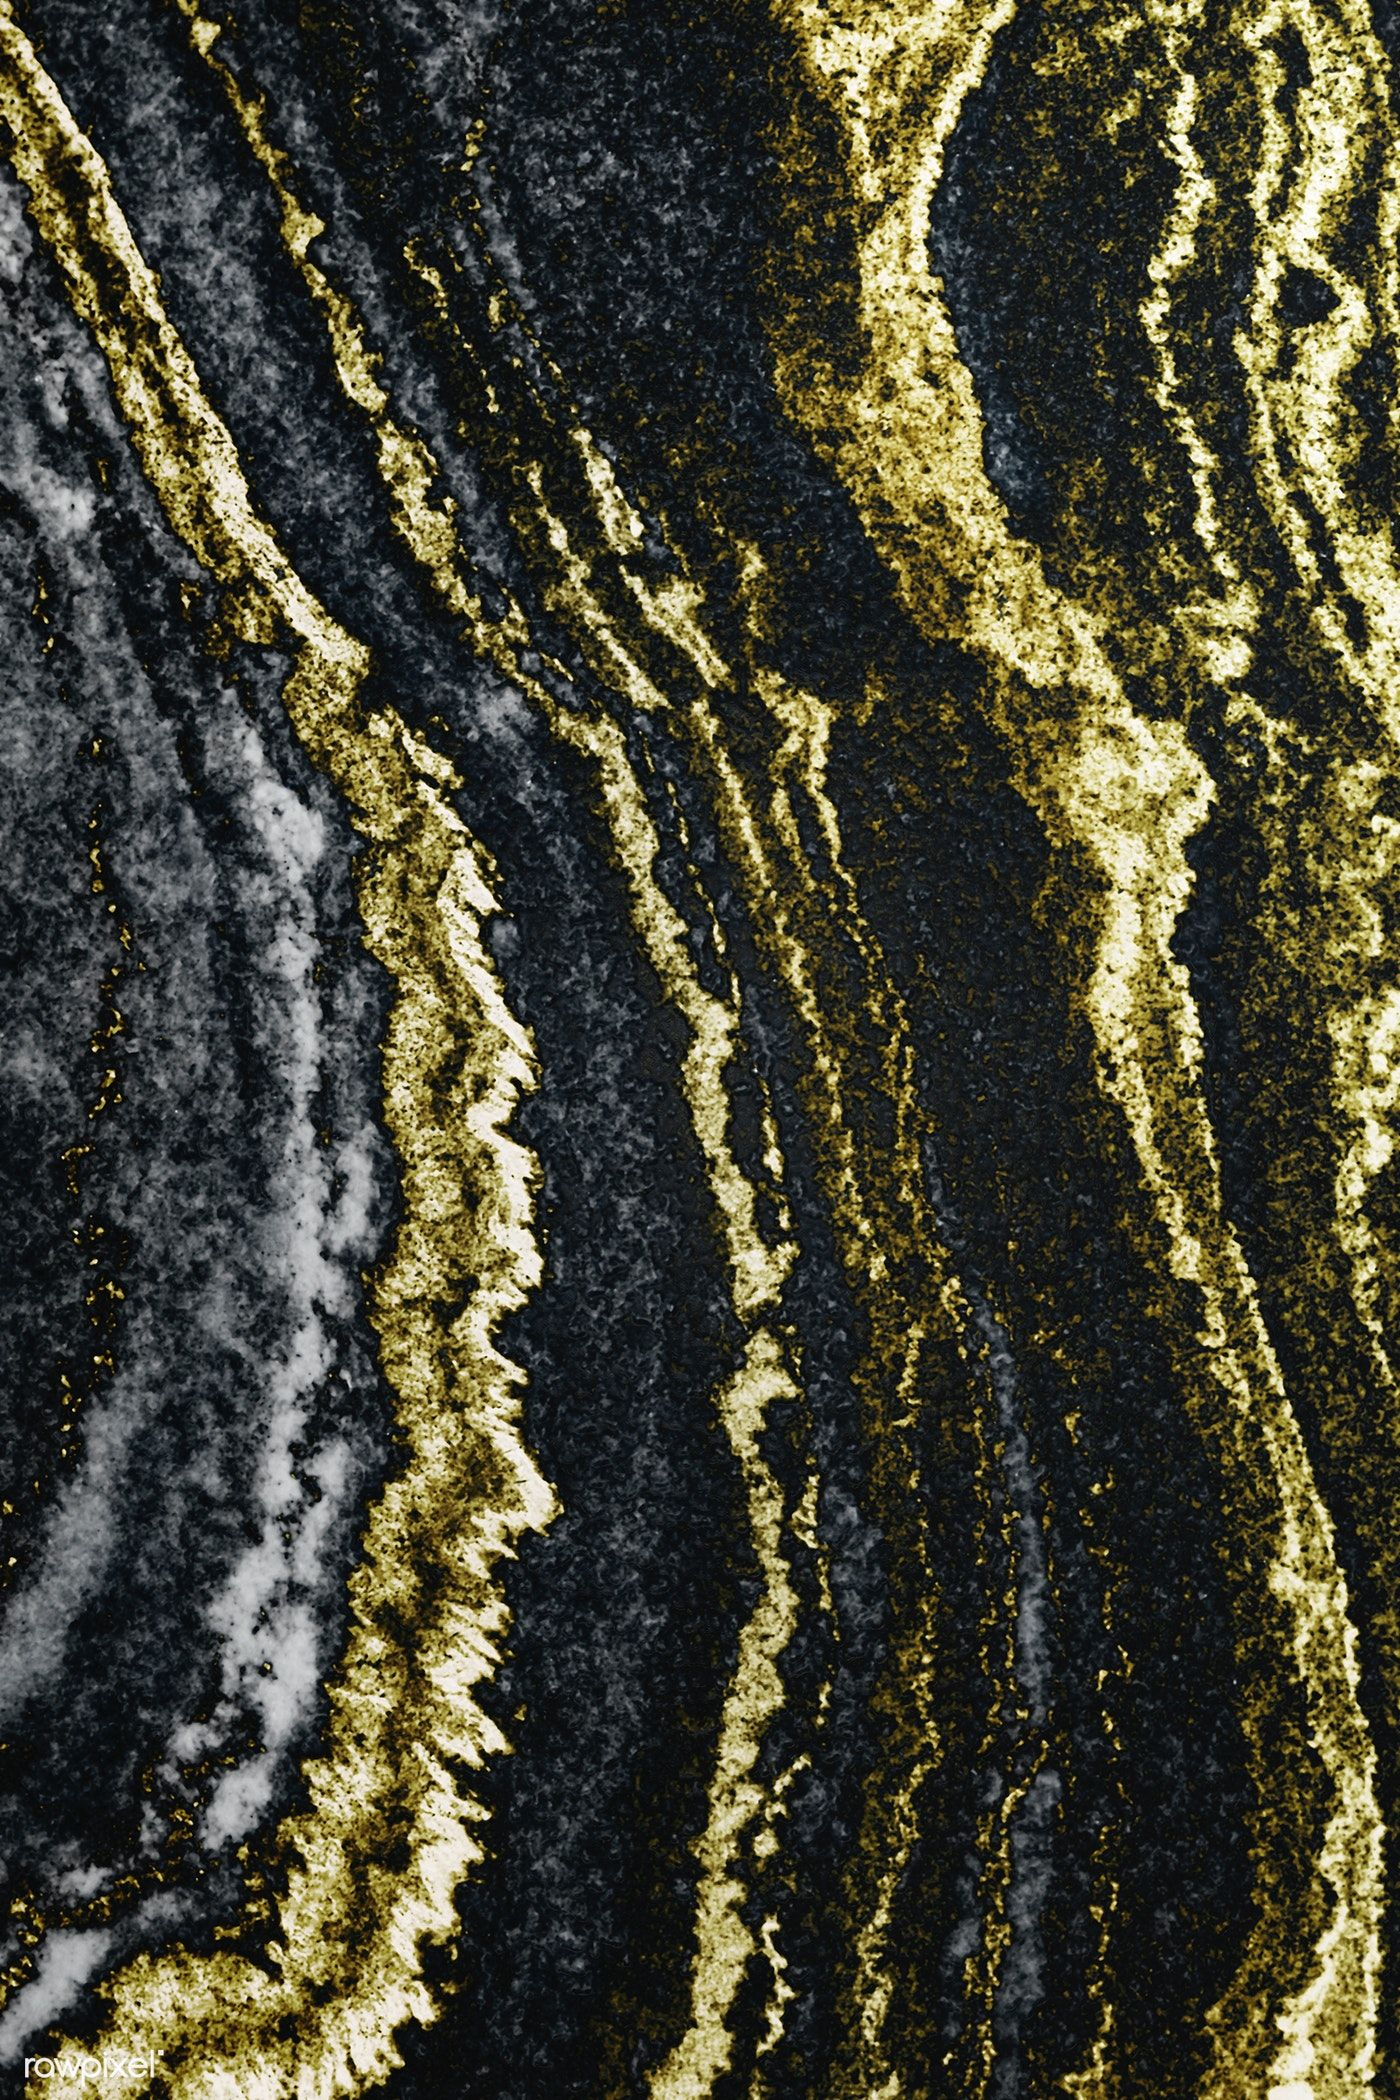 Gold And Black Layered Marble Textured Background Free Image By Rawpixel Com Chim Textured Background Black Texture Background Black Marble Background